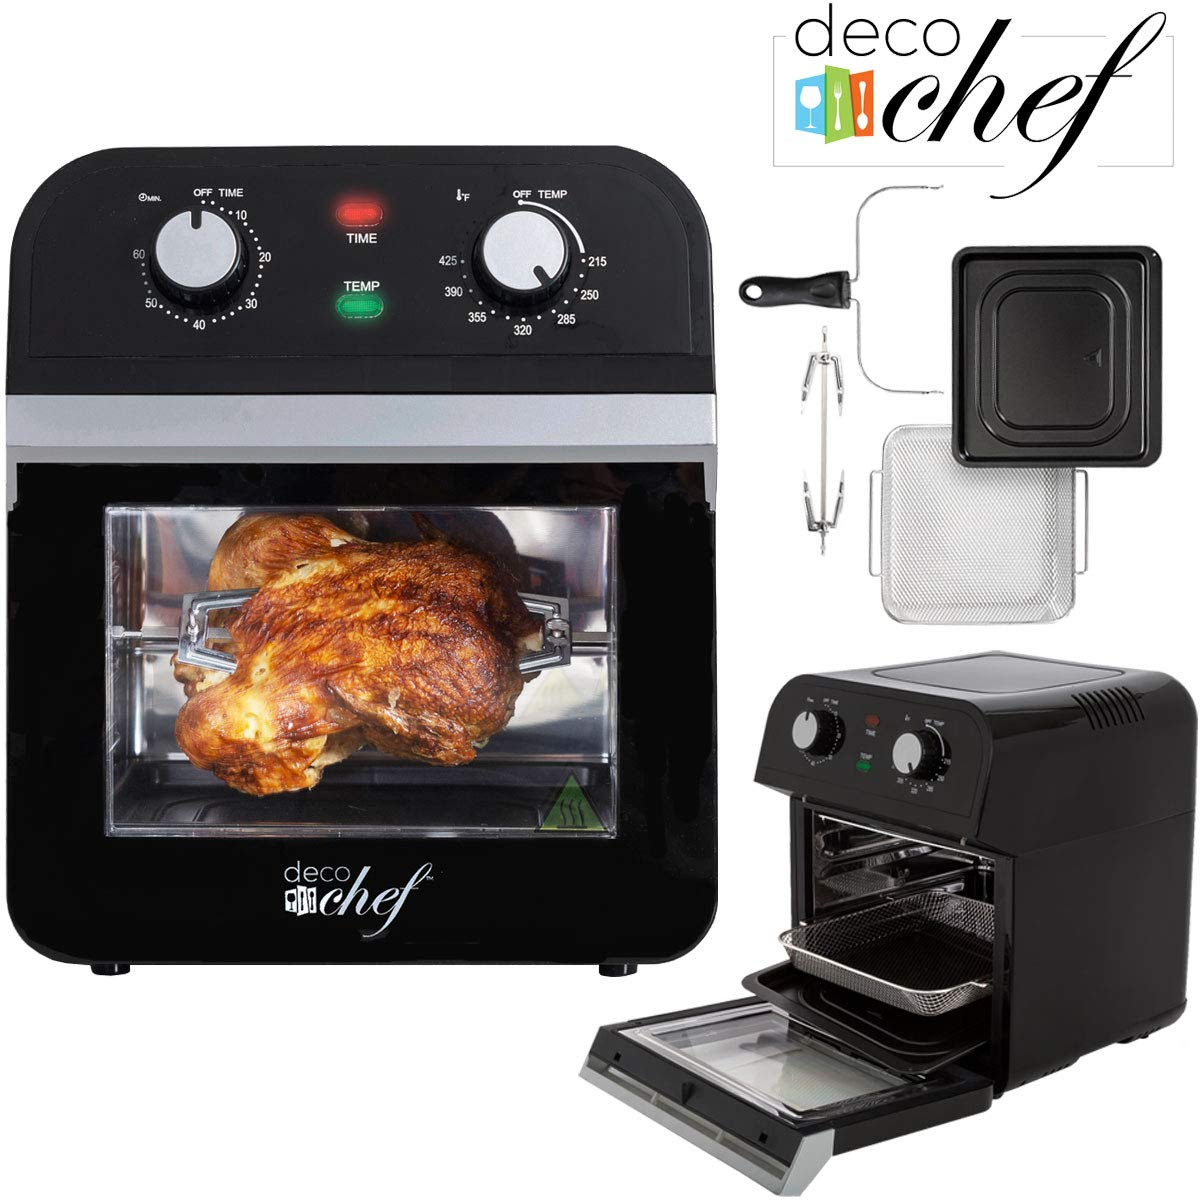 Deco Chef XL 12 7 QT Oil Free Air Fryer Multi-Function High Capacity  Countertop Convection Oven, Toaster, Dehydrator, Rotisserie All-in-One  Healthy